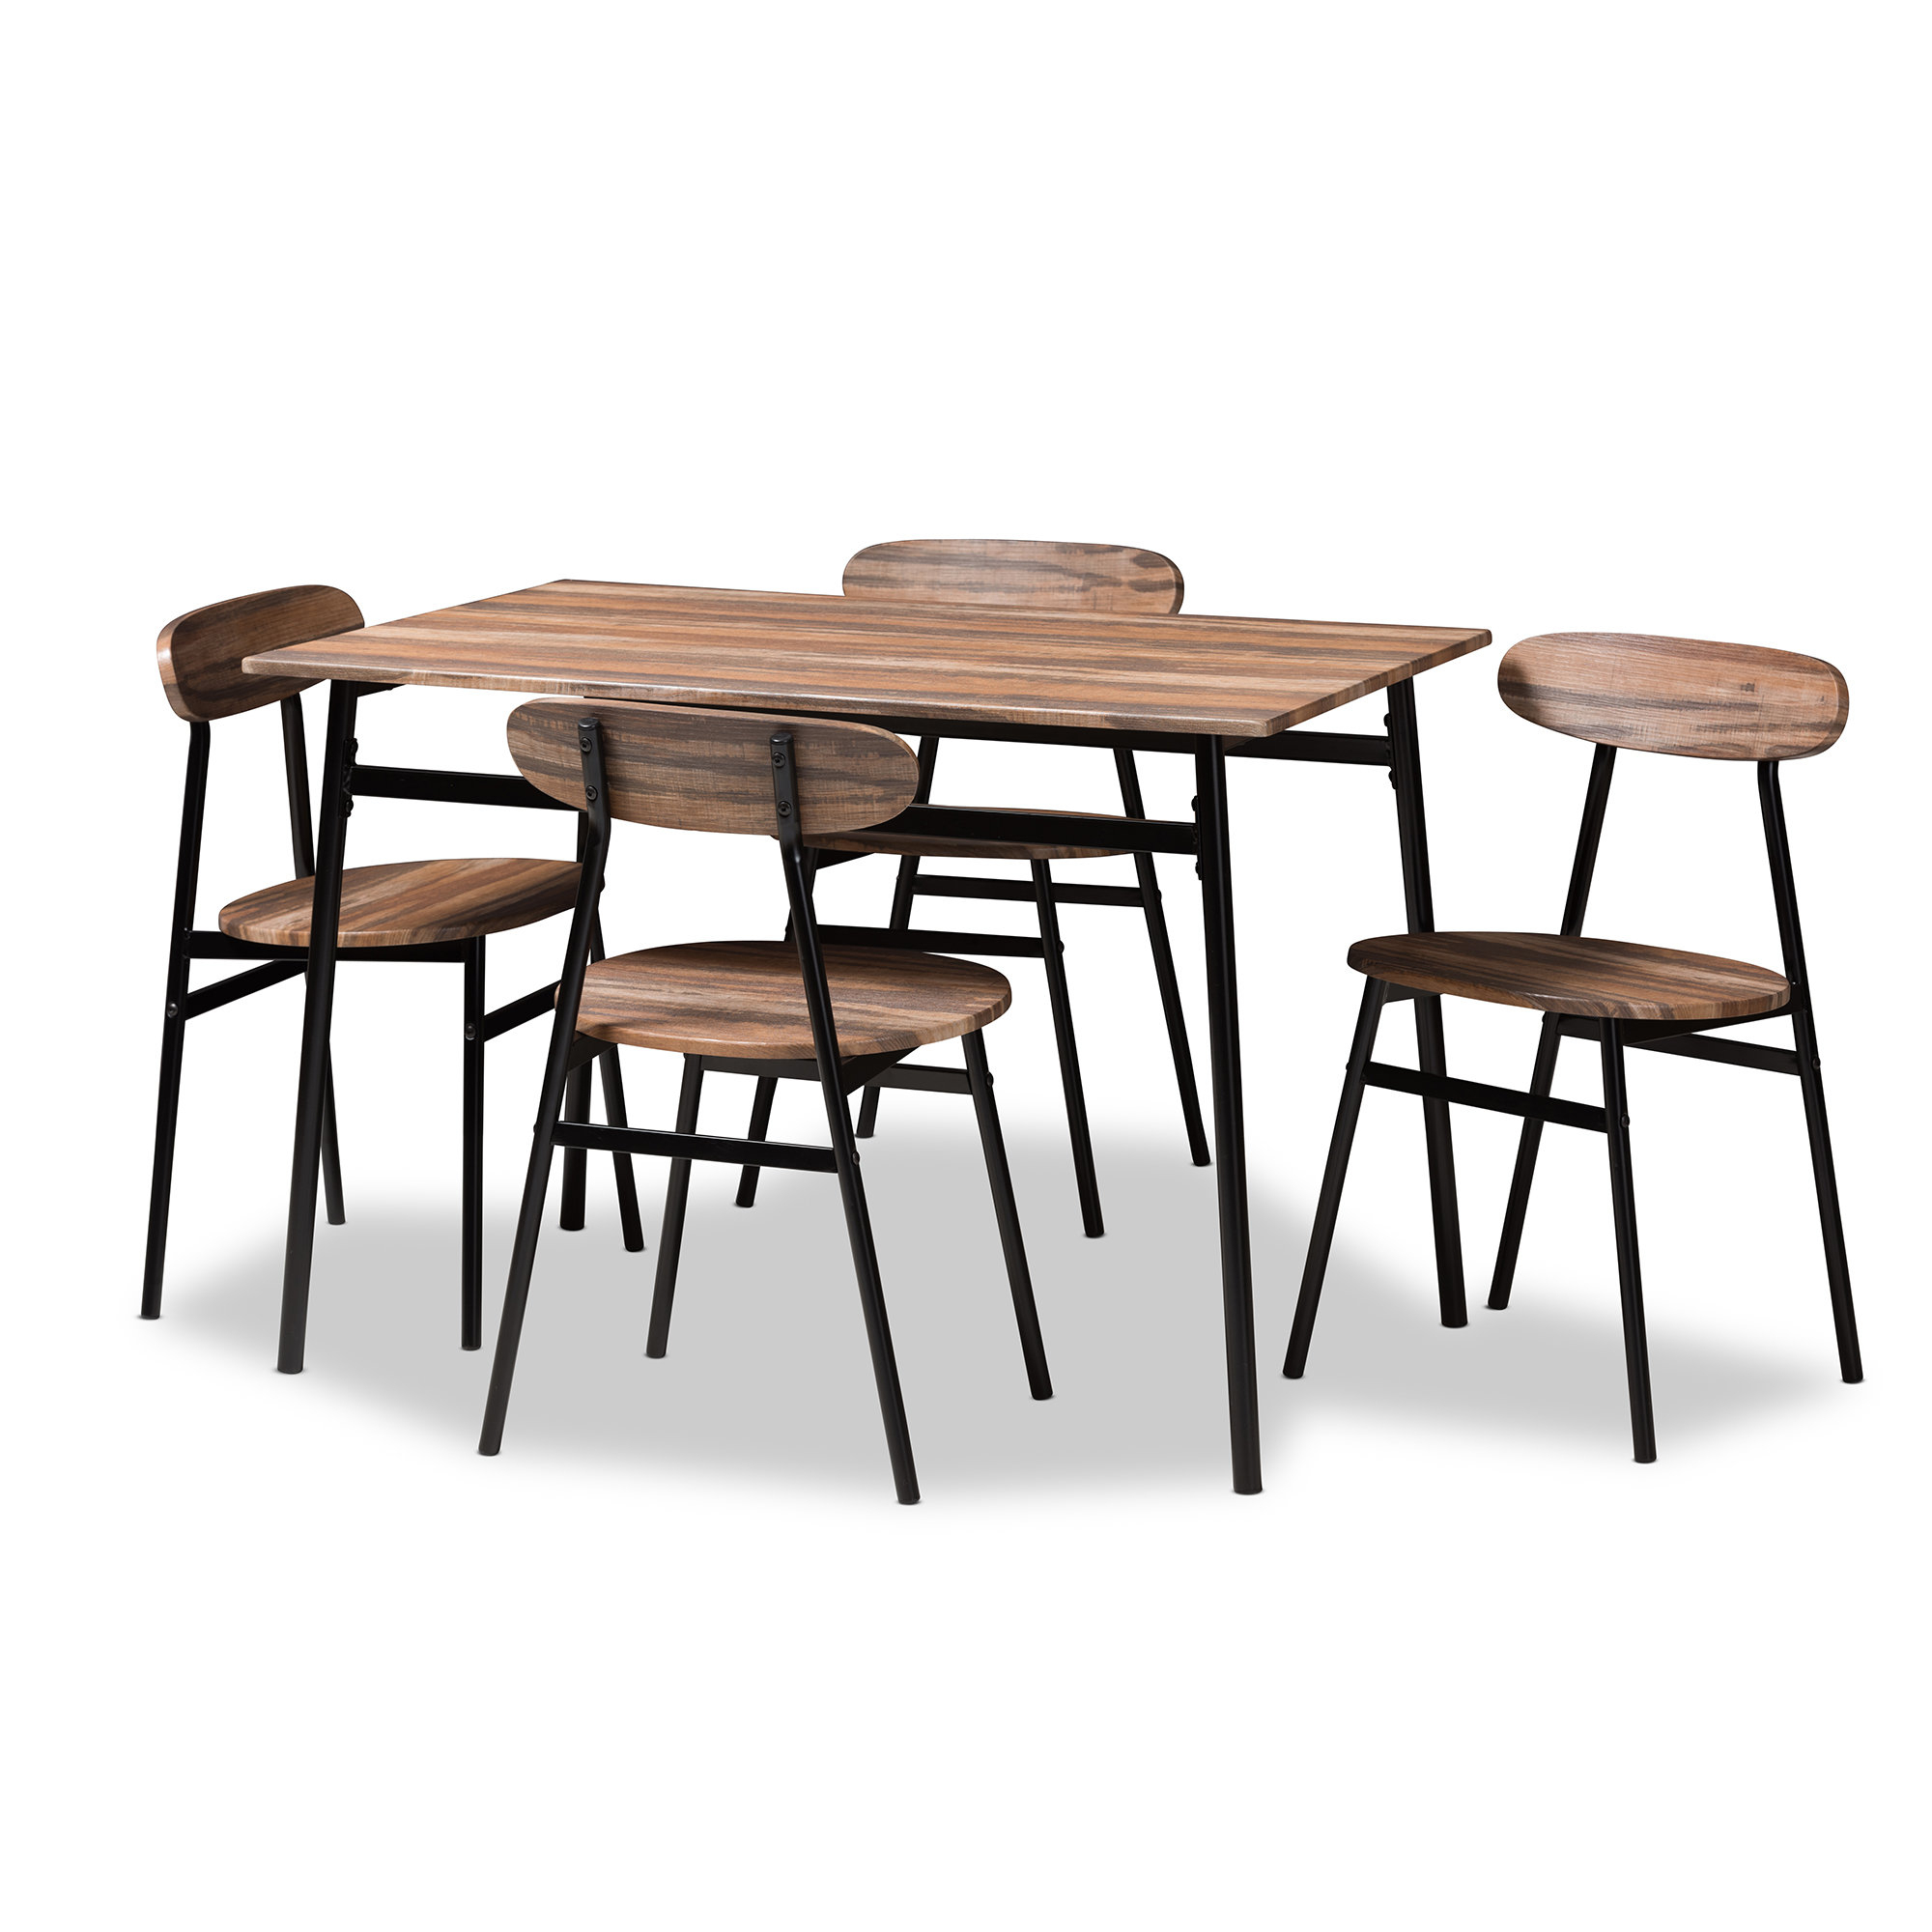 Telauges 5 Piece Dining Set Within 2018 Casiano 5 Piece Dining Sets (View 4 of 20)